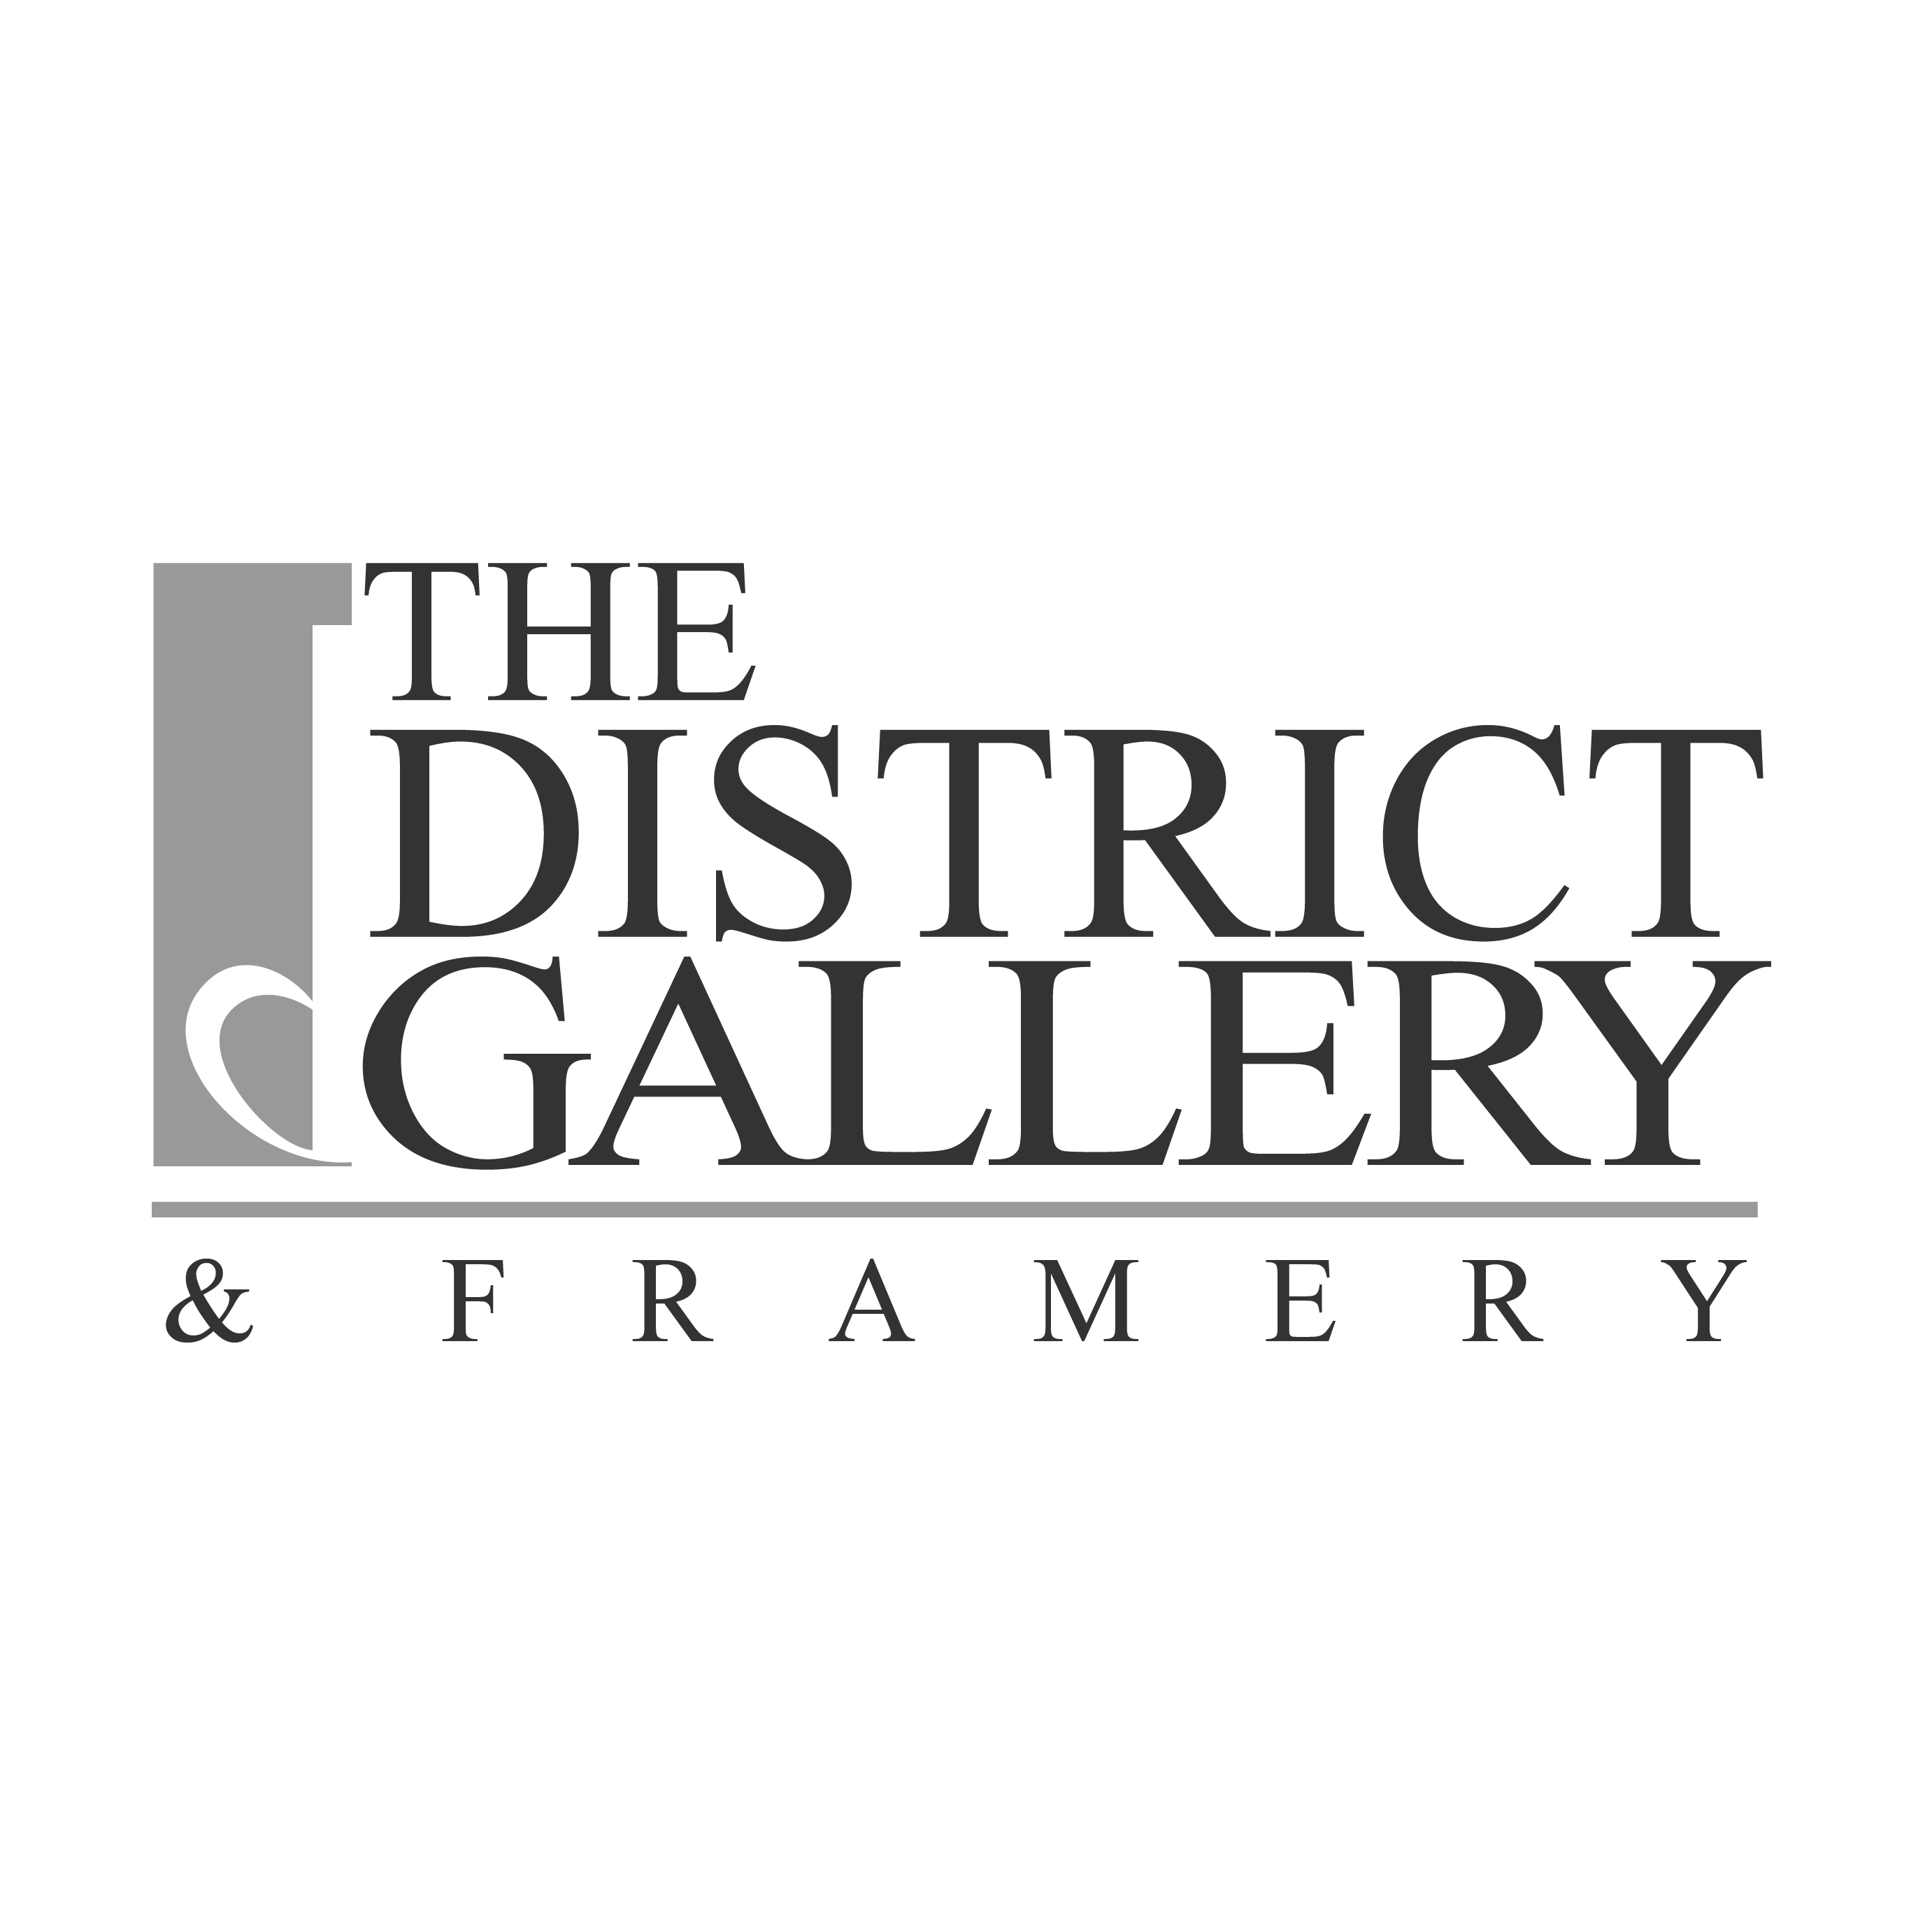 The District Gallery & Framery - Knoxville, TN 37919 - (865)200-4452 | ShowMeLocal.com